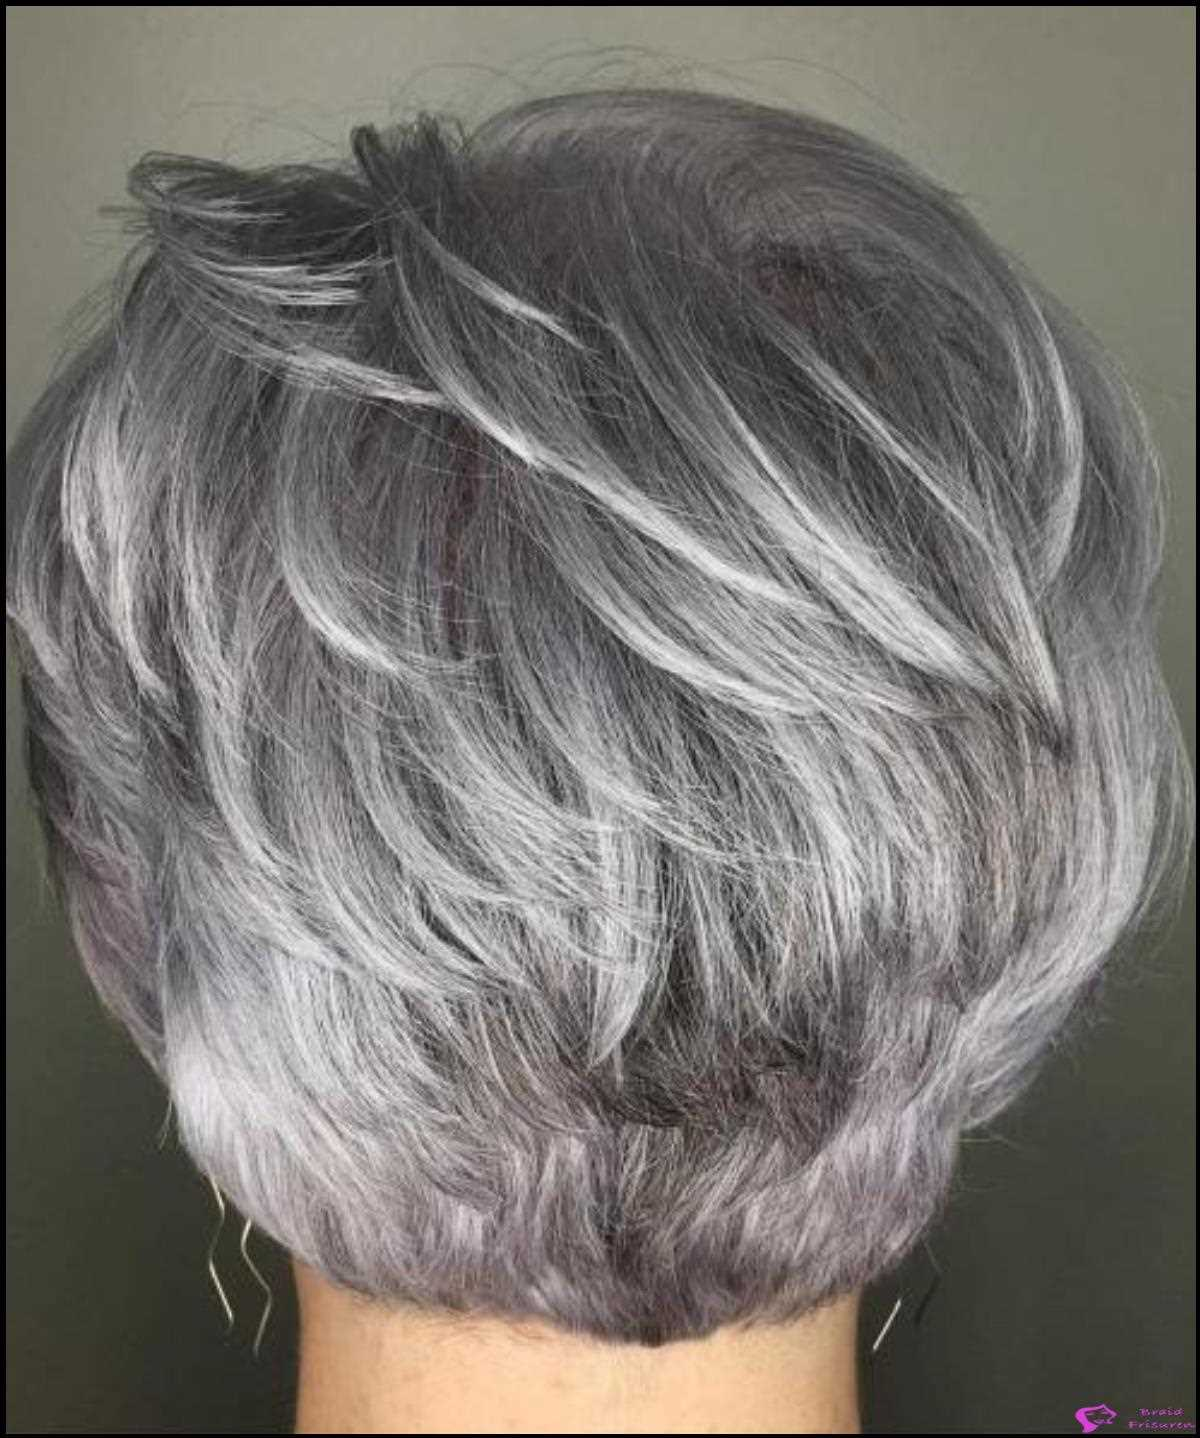 27: Cool-Toned Silver Balayage Pixie